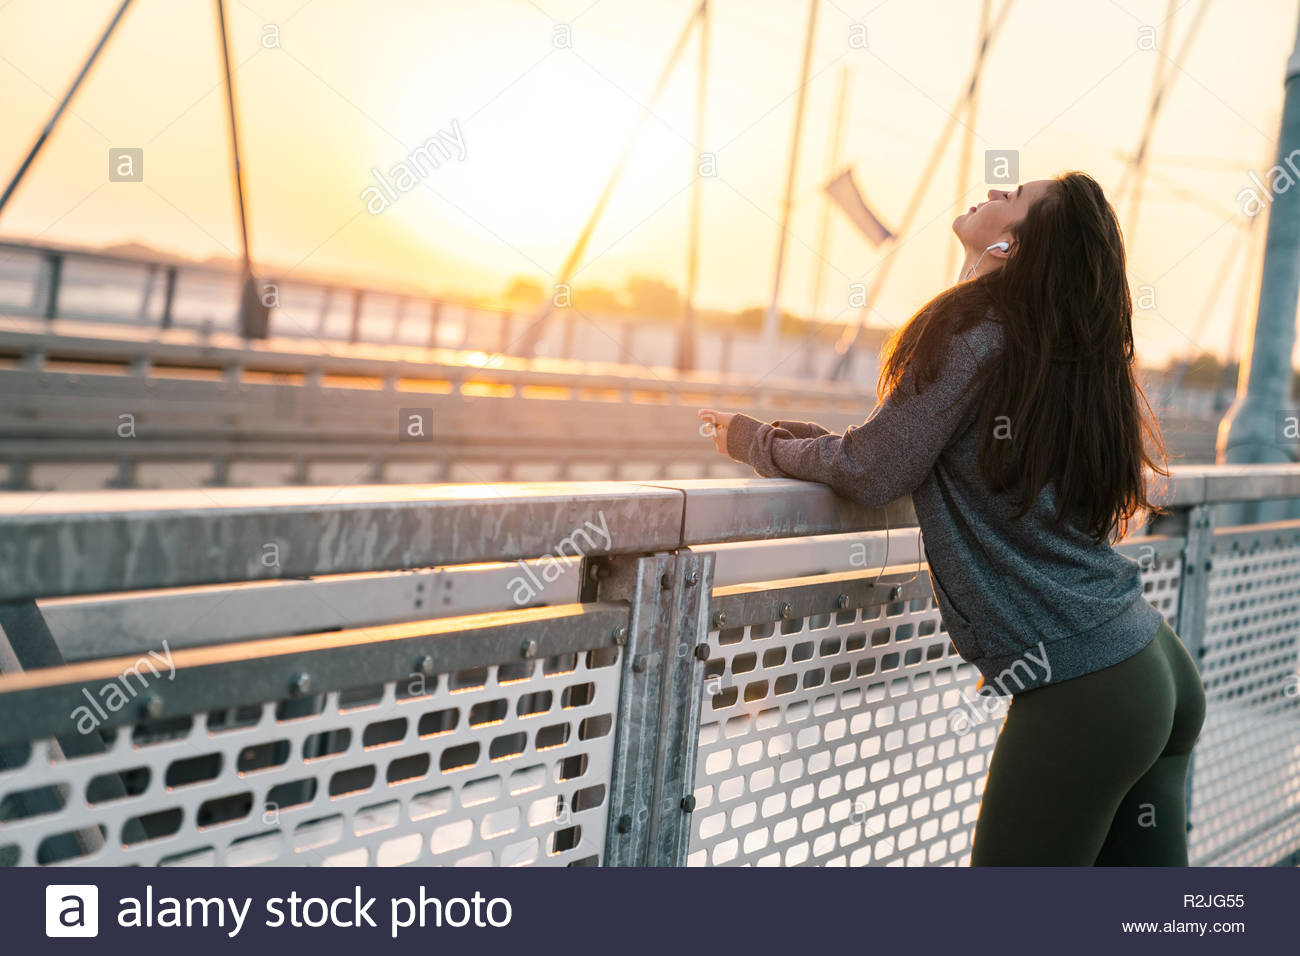 Young sportswoman relaxing while listening to music on earphones at sunrise. - Stock Image